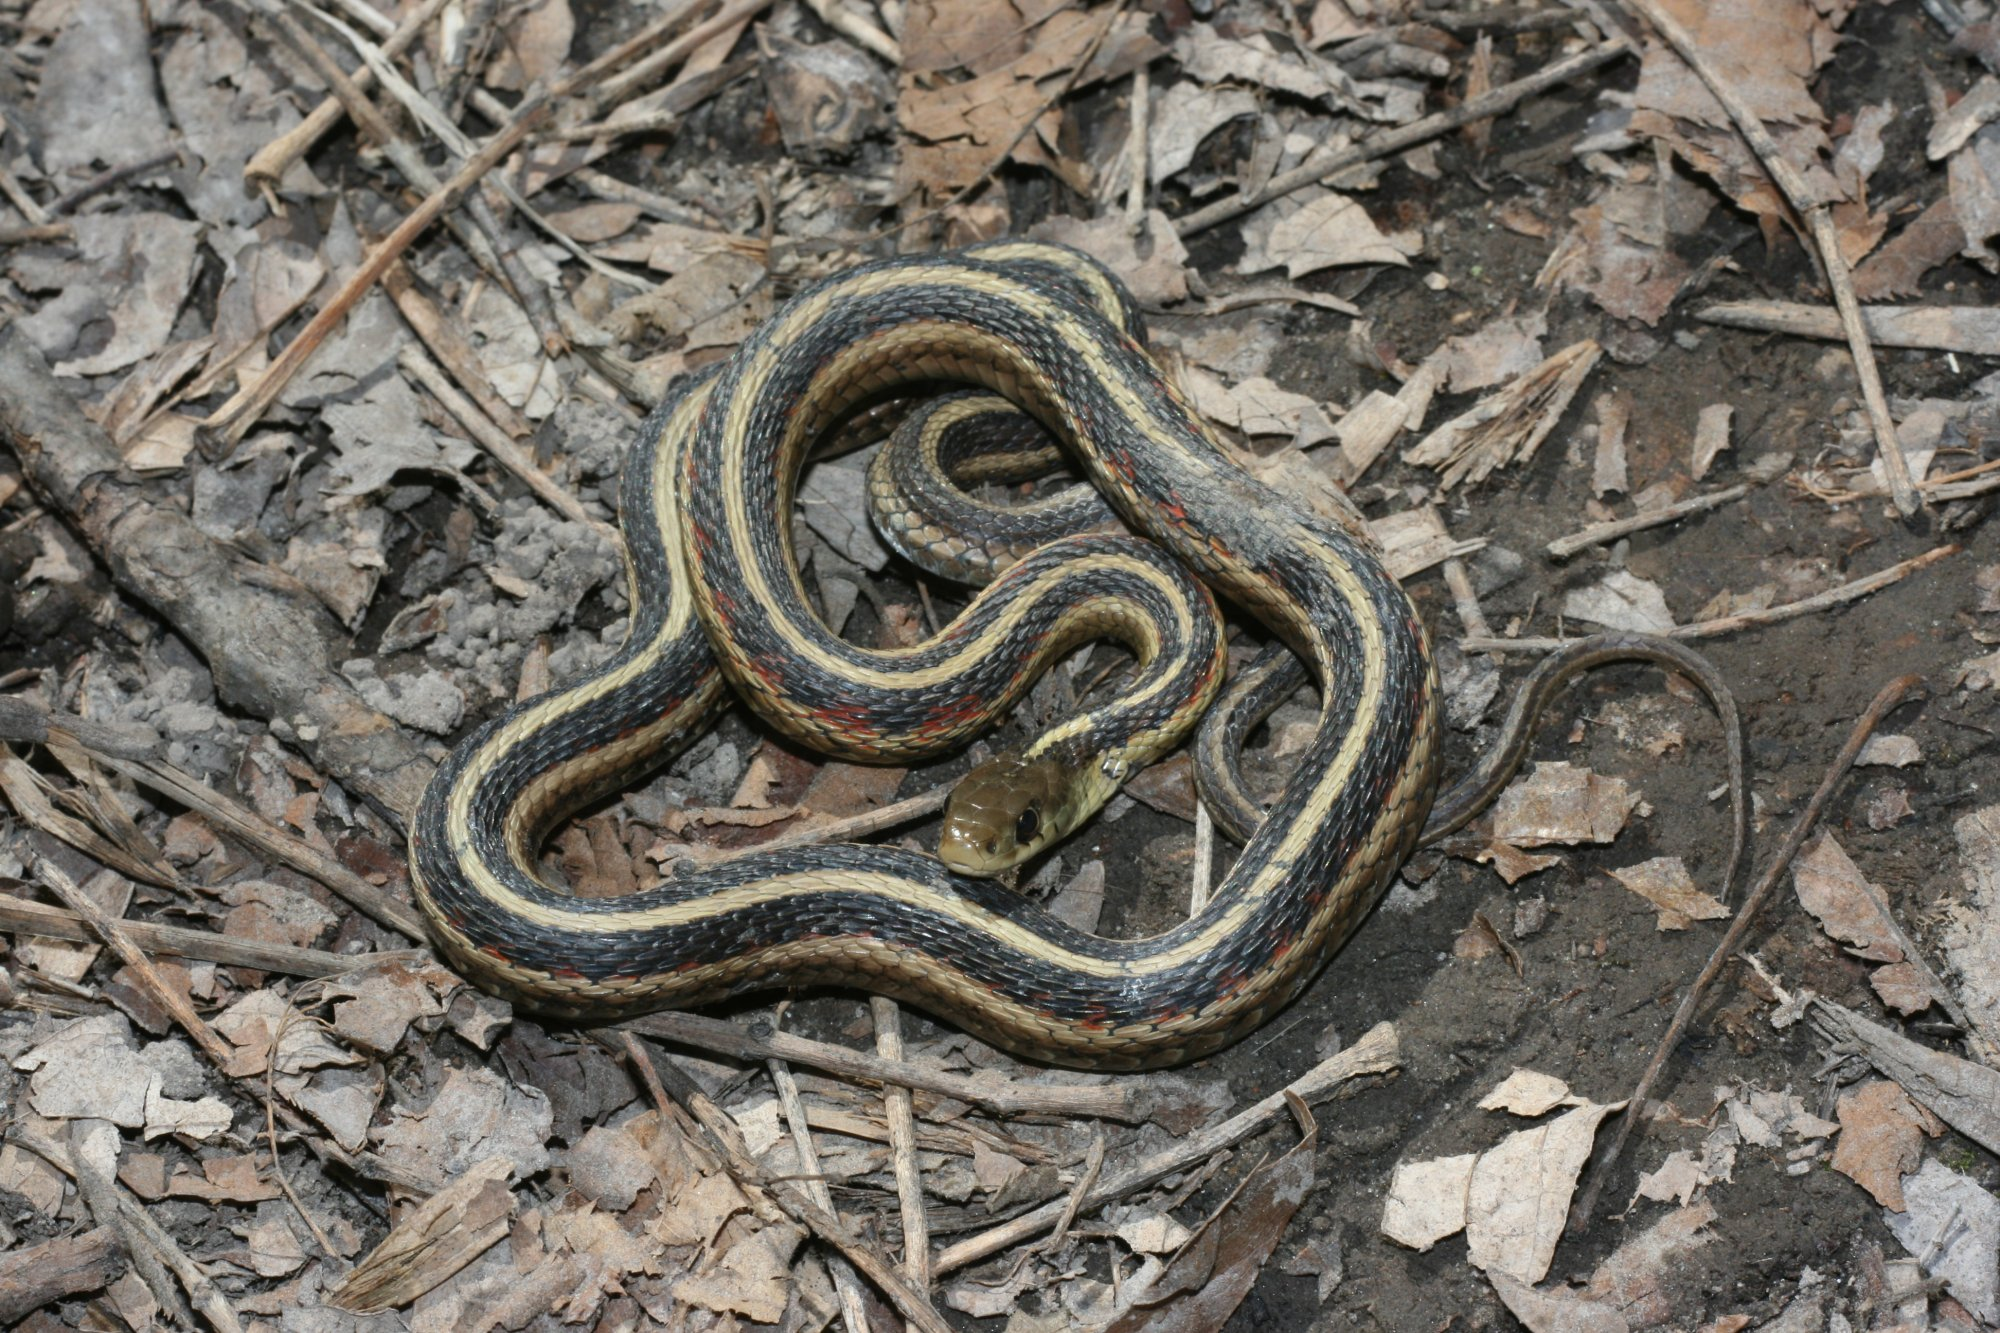 Common Garter Snake (Thamnophis sirtalis) - Reptiles and Amphibians ... 4b9af8172